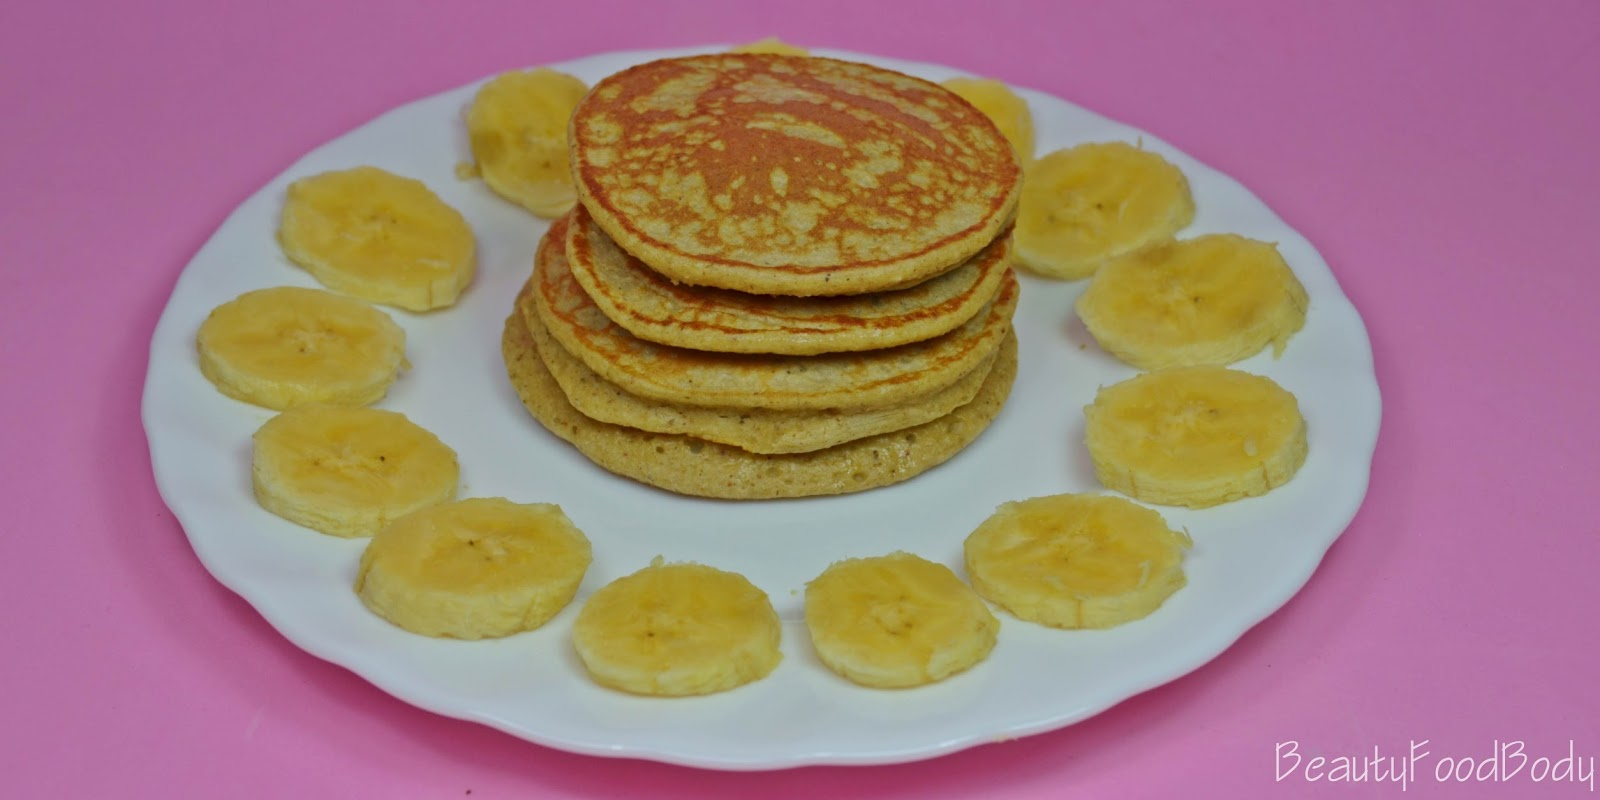 beautyfoodbody tortitas pancakes platano camote amarillo fit healthy